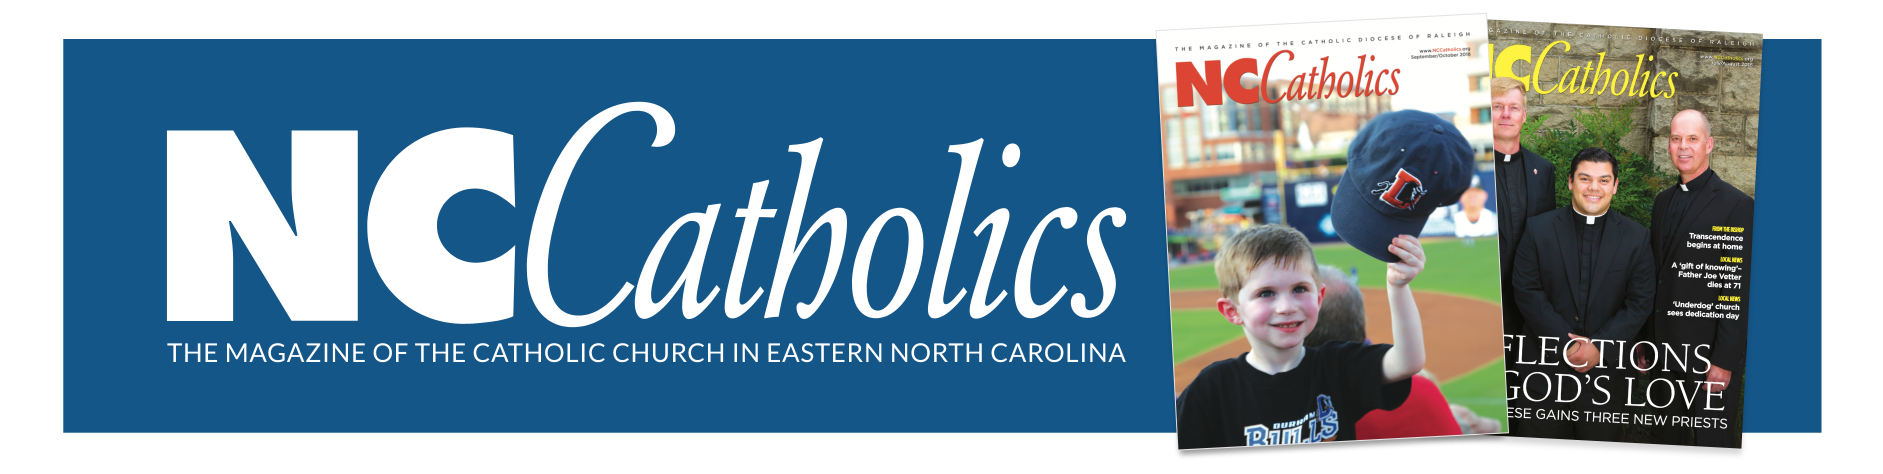 NC Catholics Magazine